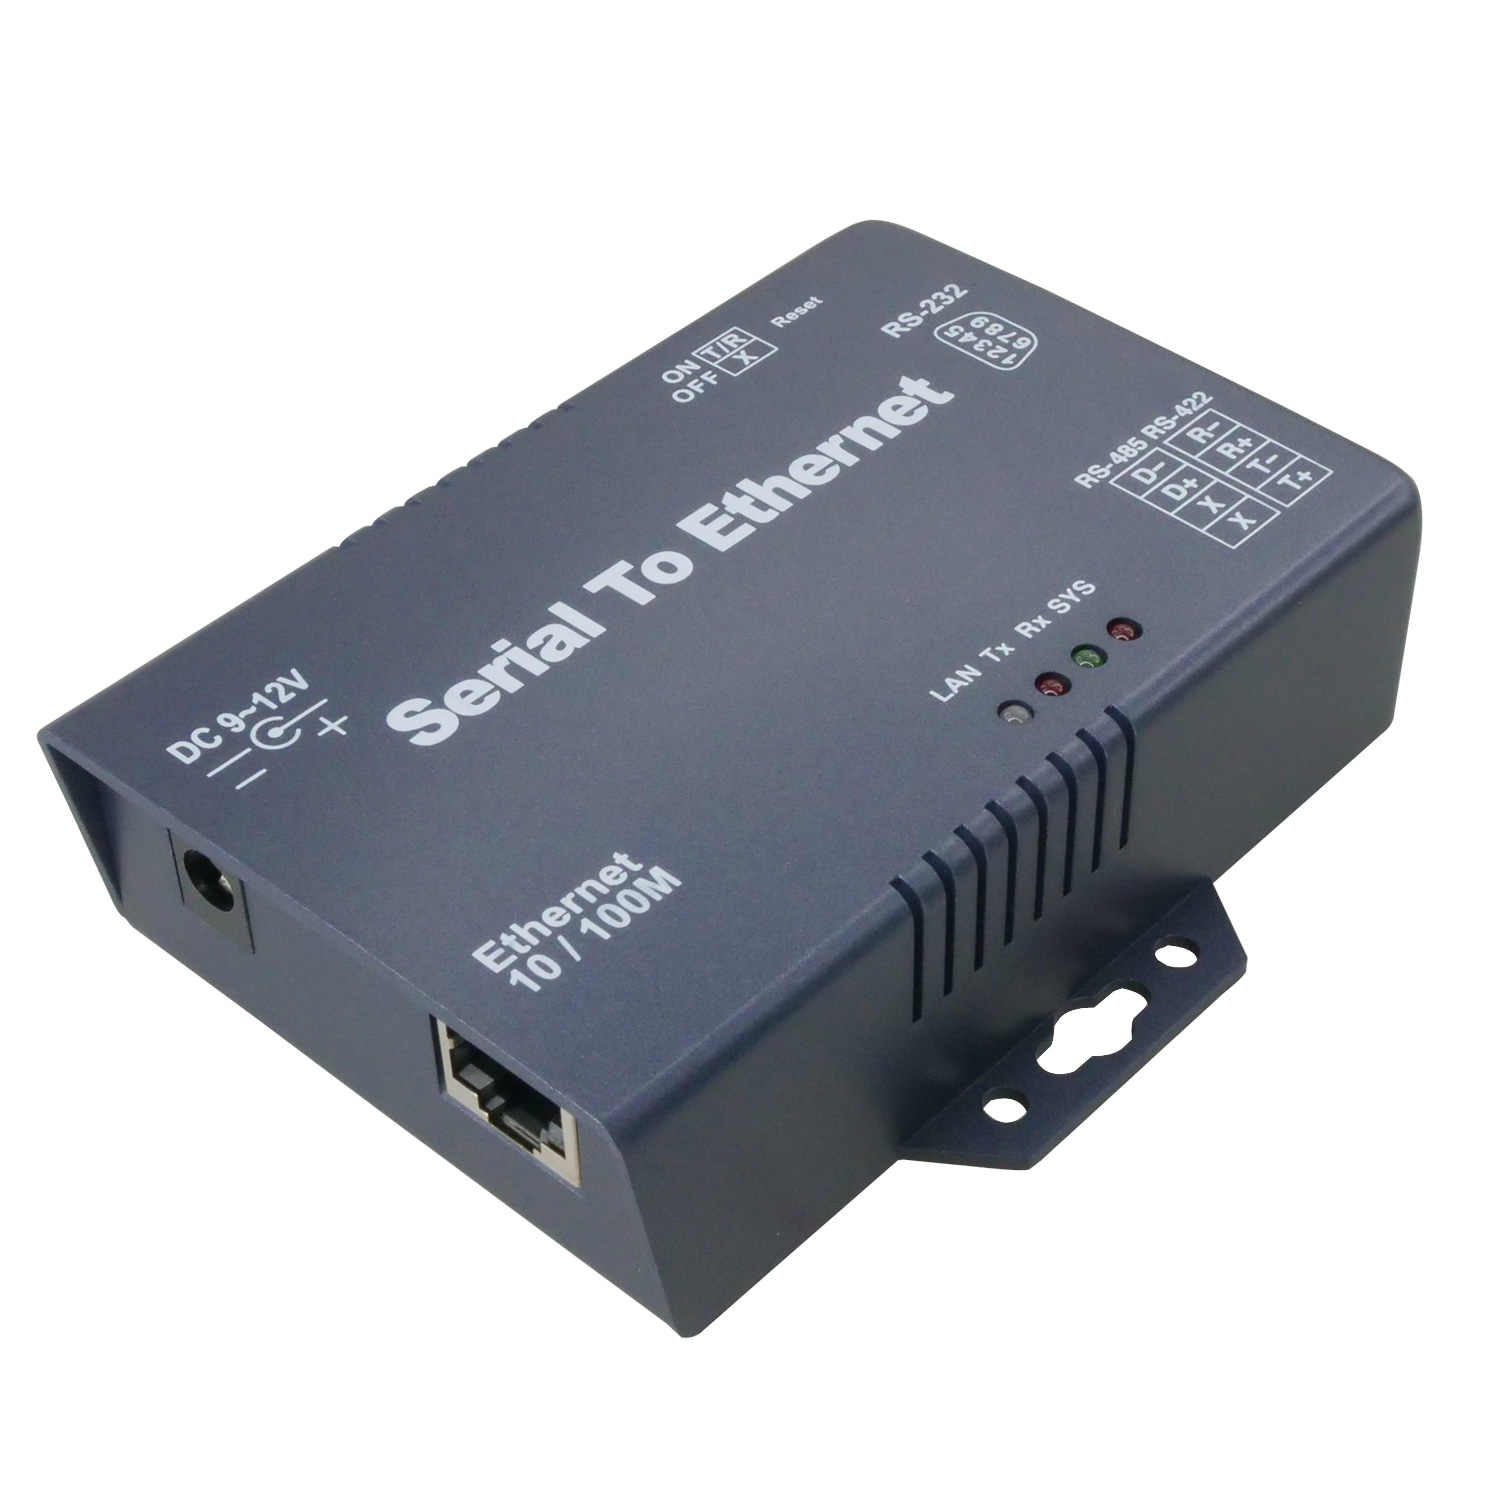 rs232 rs422 rs485 to ethernet rj45 tcp ip internet converter